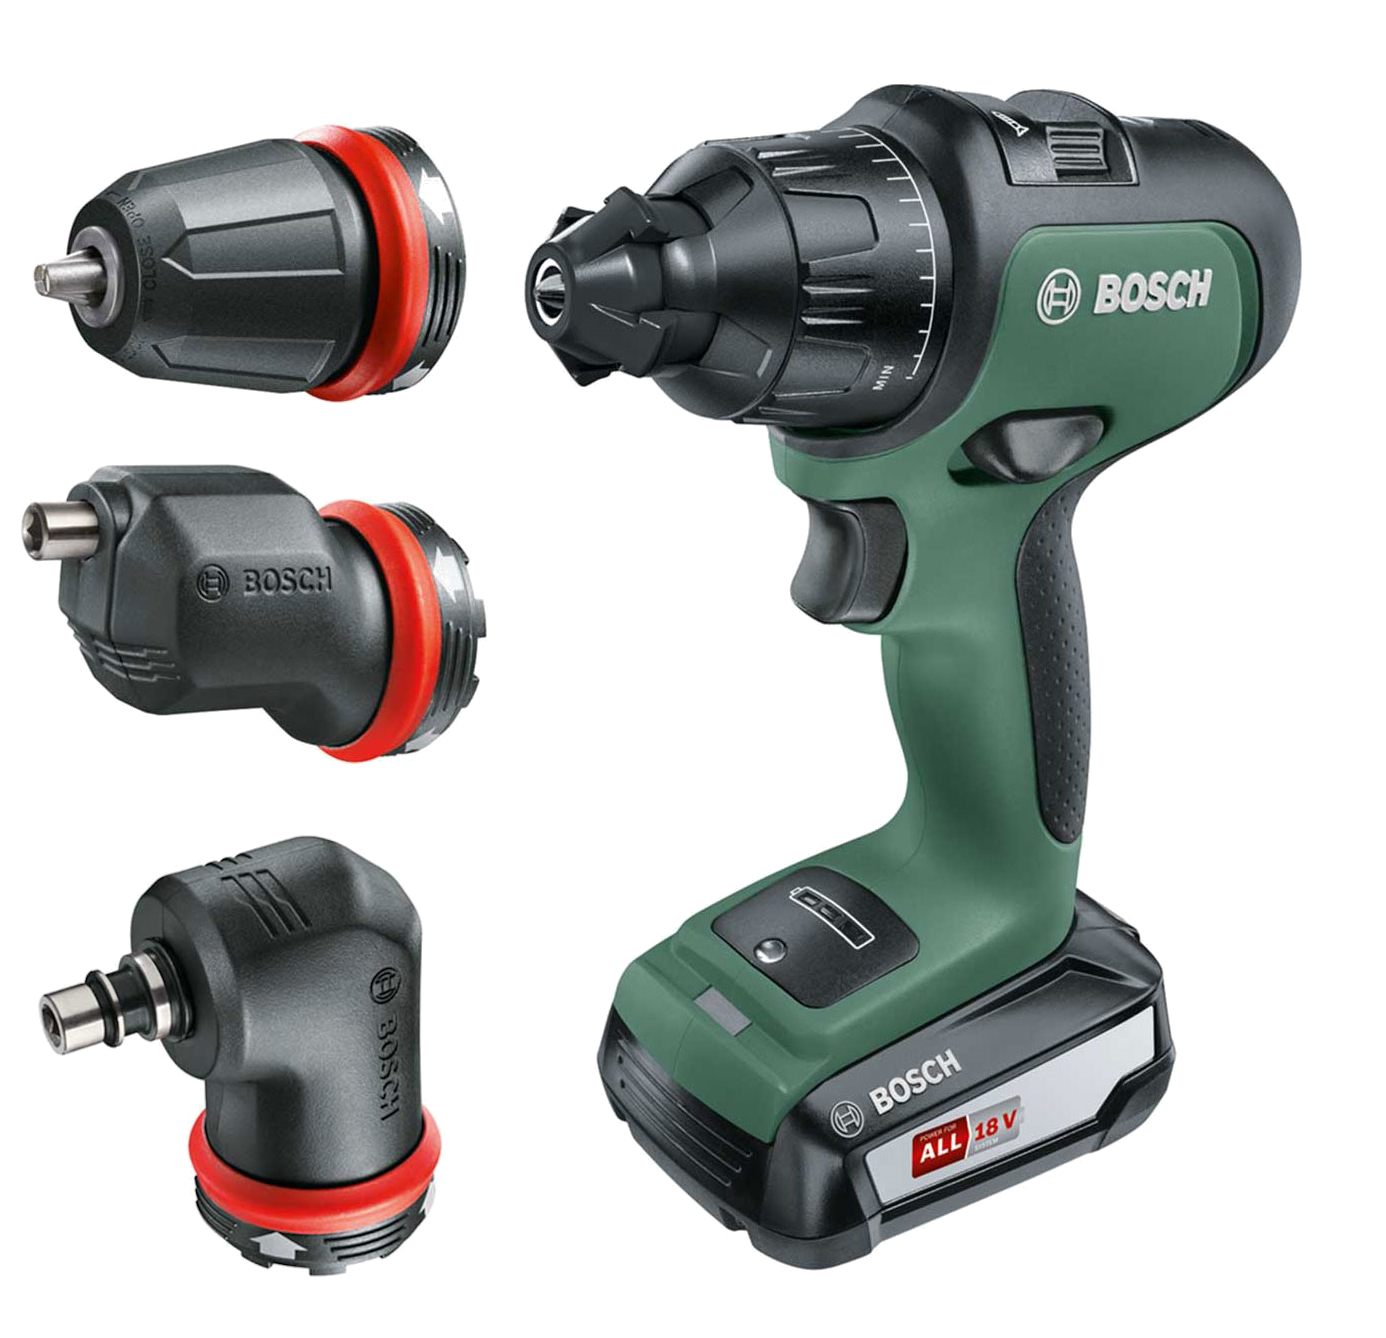 Nouvelle Perceuse visseuse Bosch AdvancedImpact 18